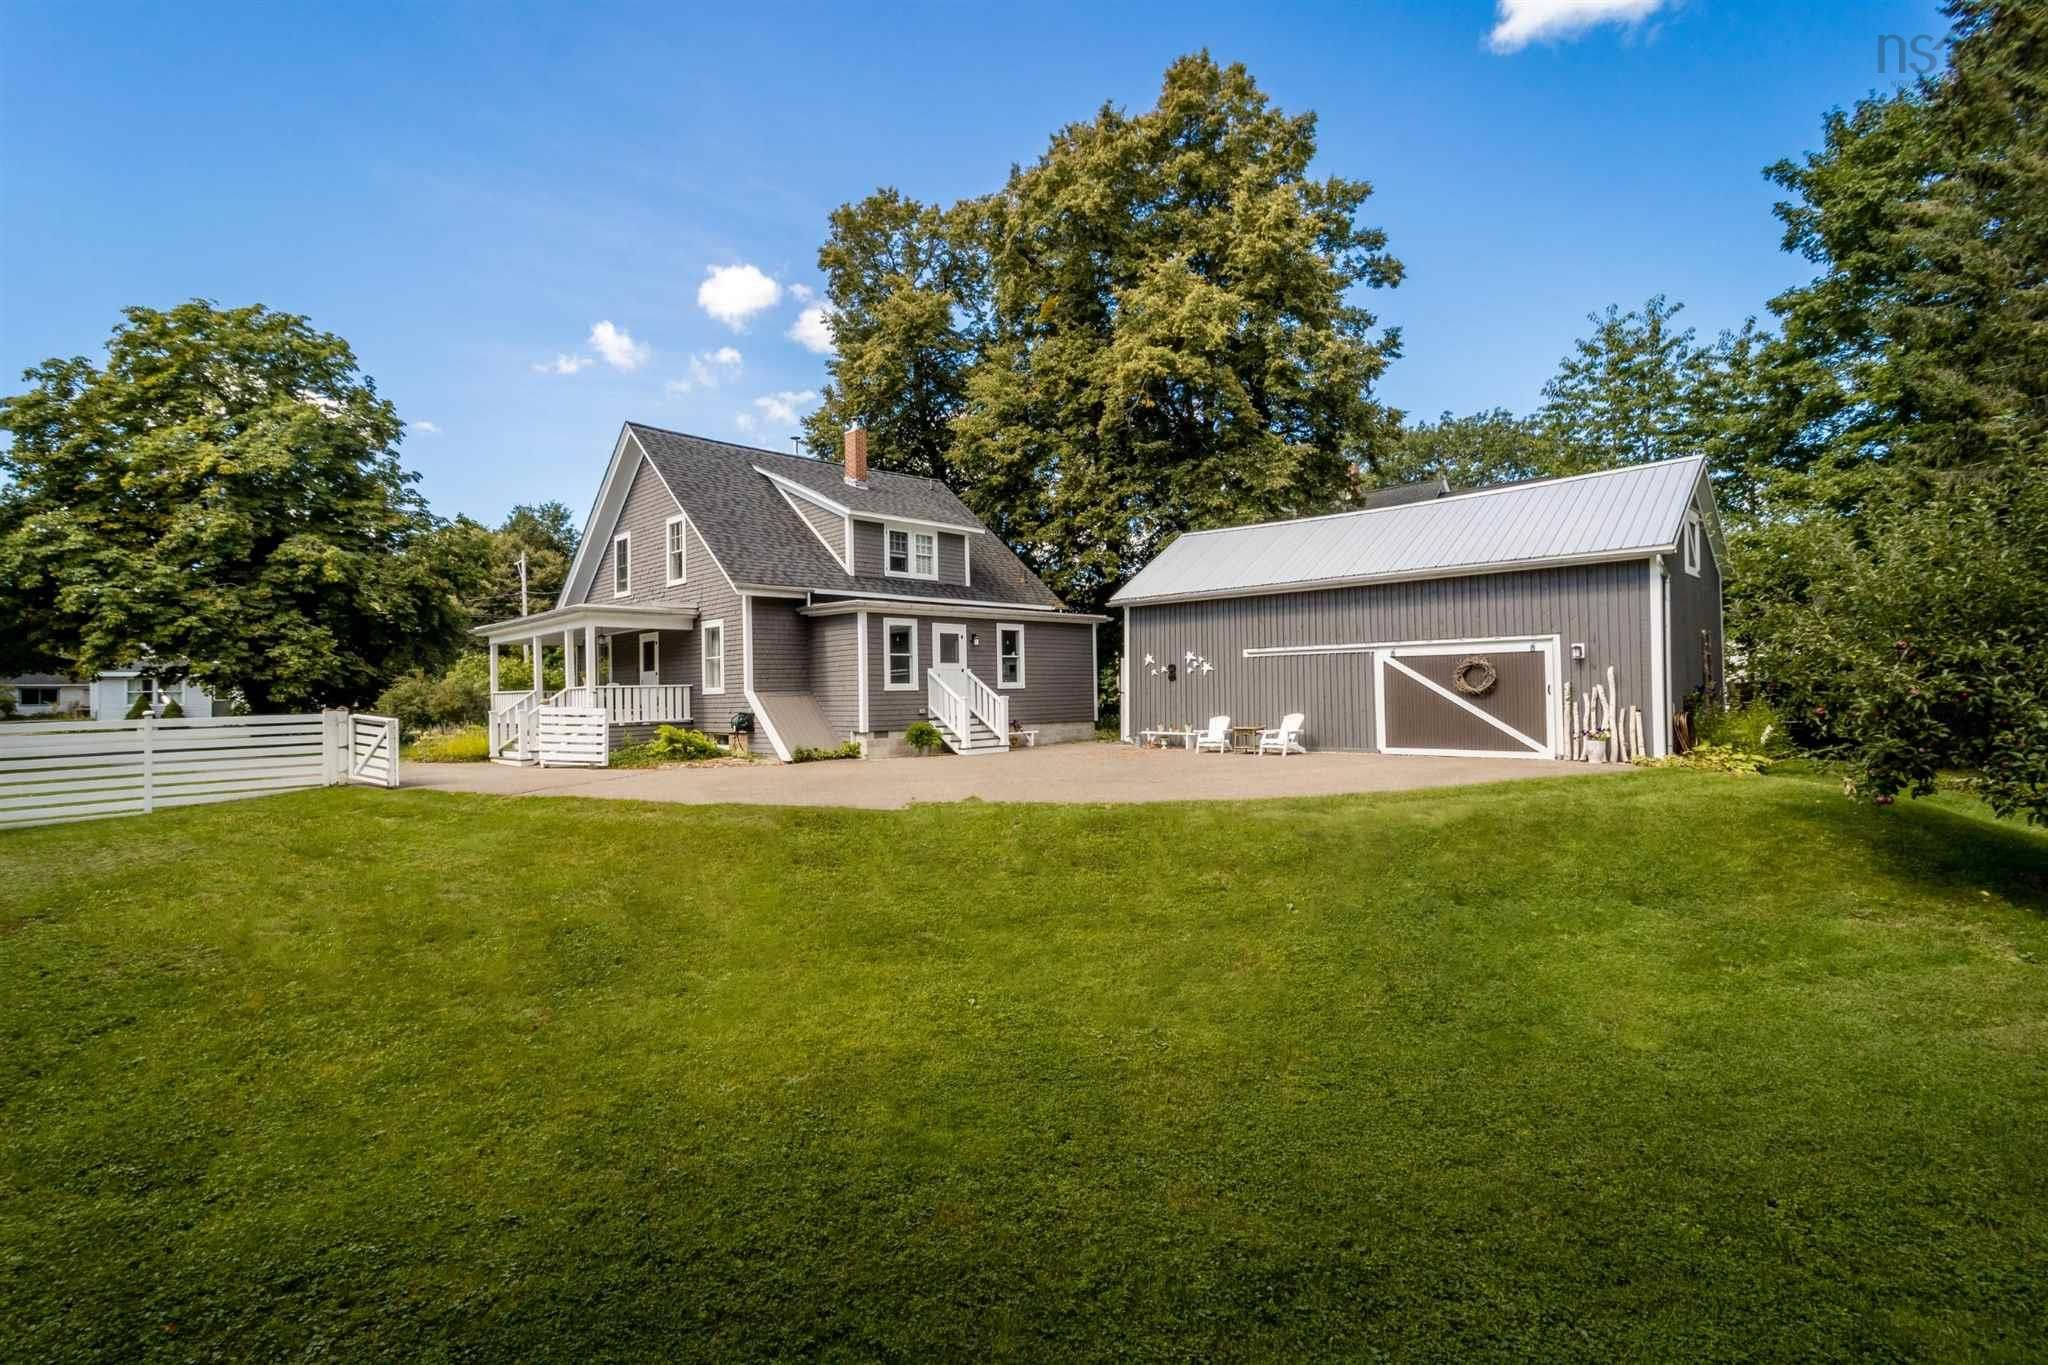 Main Photo: 1938 Highway 359 in Centreville: 404-Kings County Residential for sale (Annapolis Valley)  : MLS®# 202123305